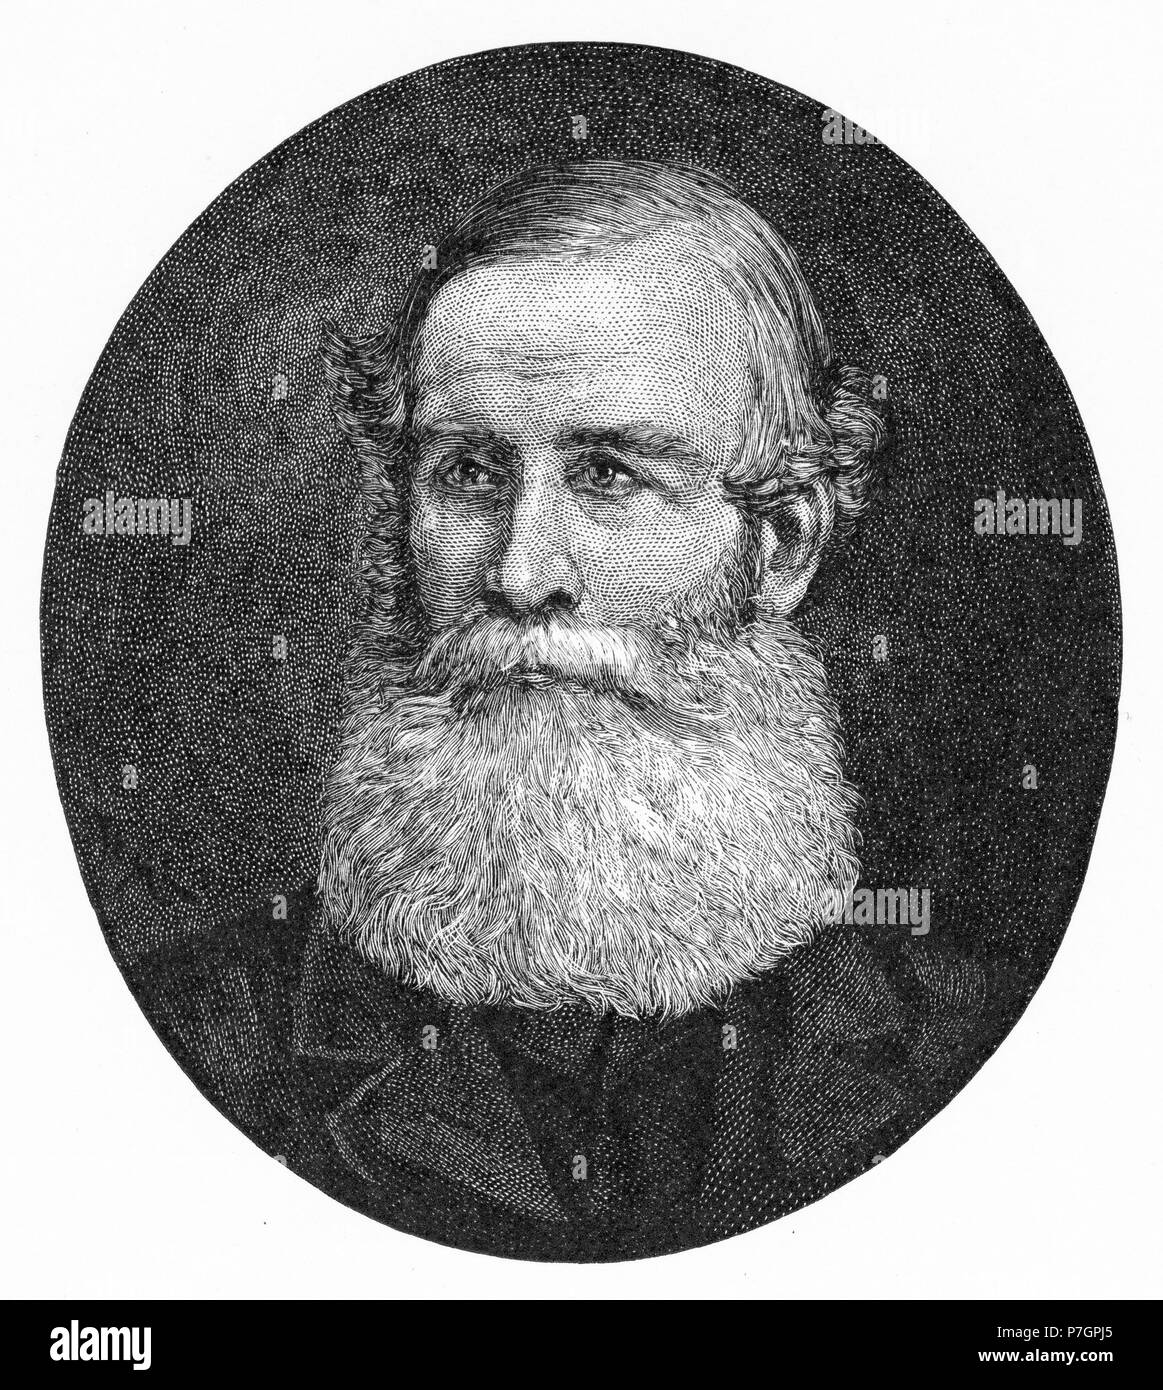 Engraving of Patrick Leslie (1815-79) Scottish pioneer of the Darling Downs, Queensland, Australia.  From the Picturesque Atlas of Australasia Vol 2, 1886 - Stock Image